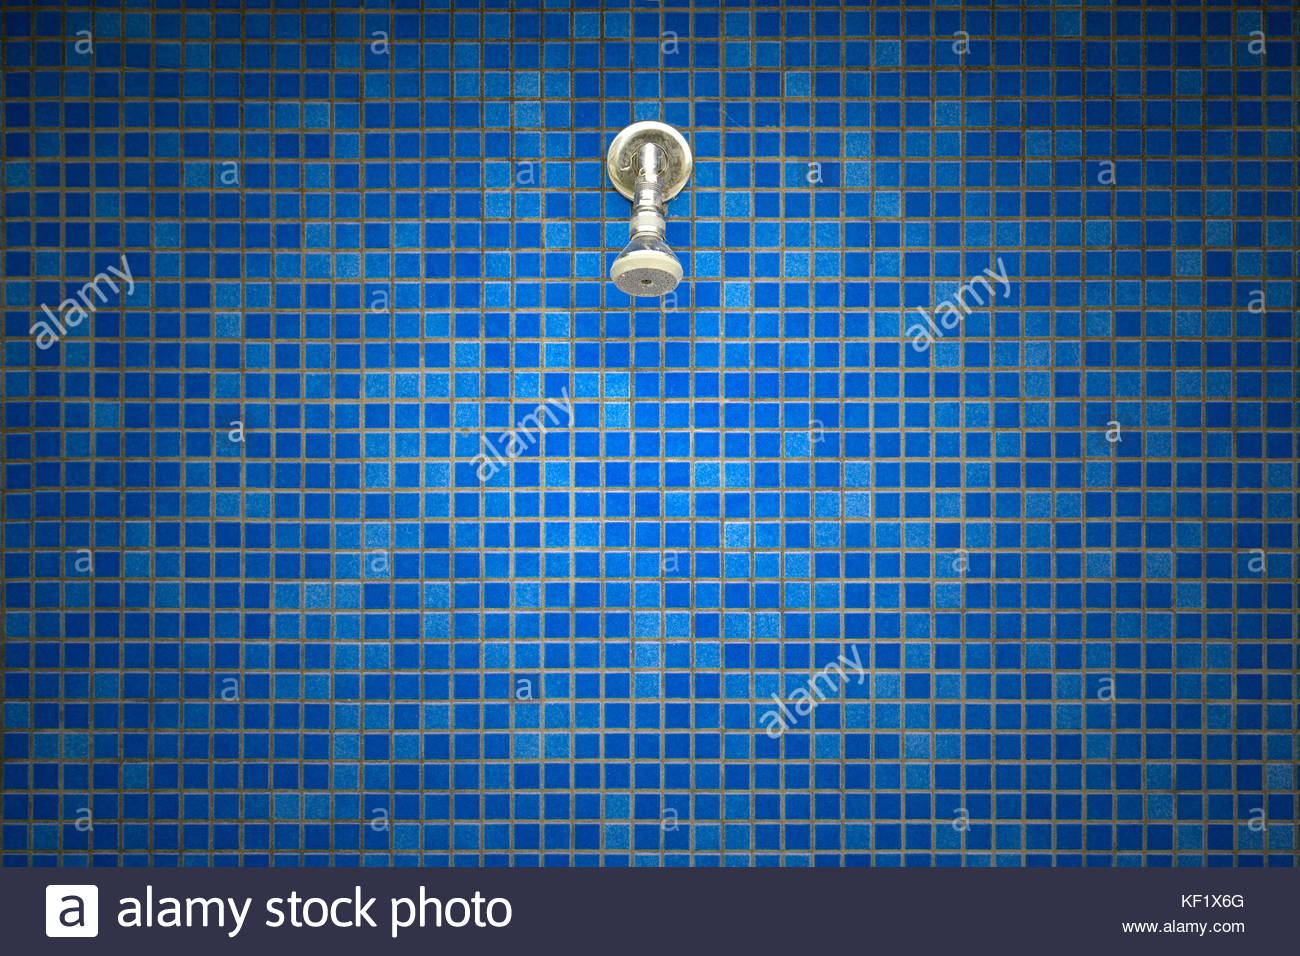 Closeup Mosaic Colored Ceramic Tile Stock Photos & Closeup Mosaic ...